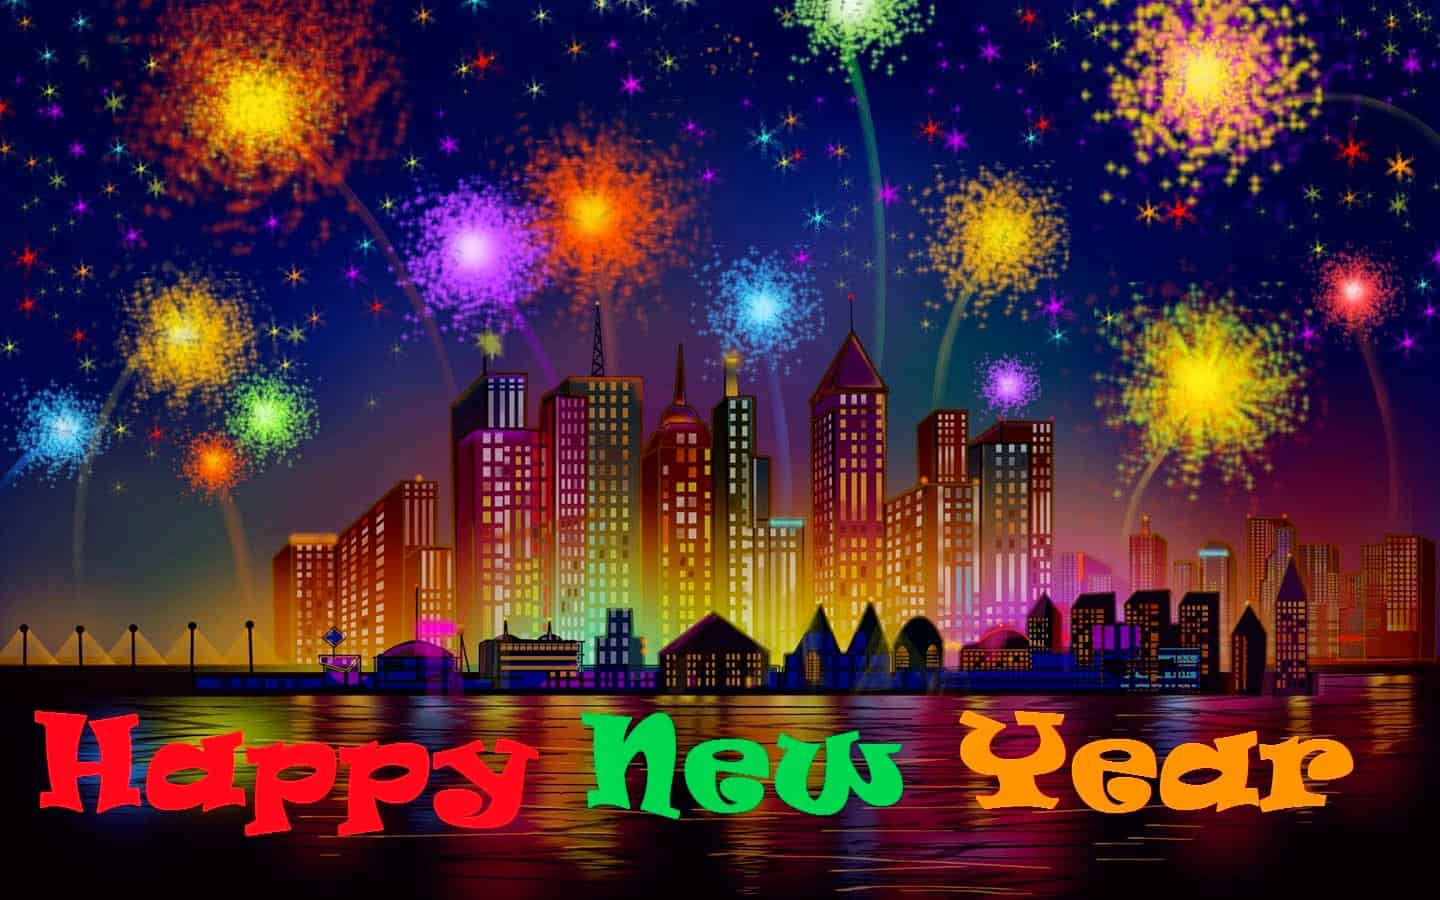 Happy New Year 2015 Photos Pics Pictures Download for 1440x900